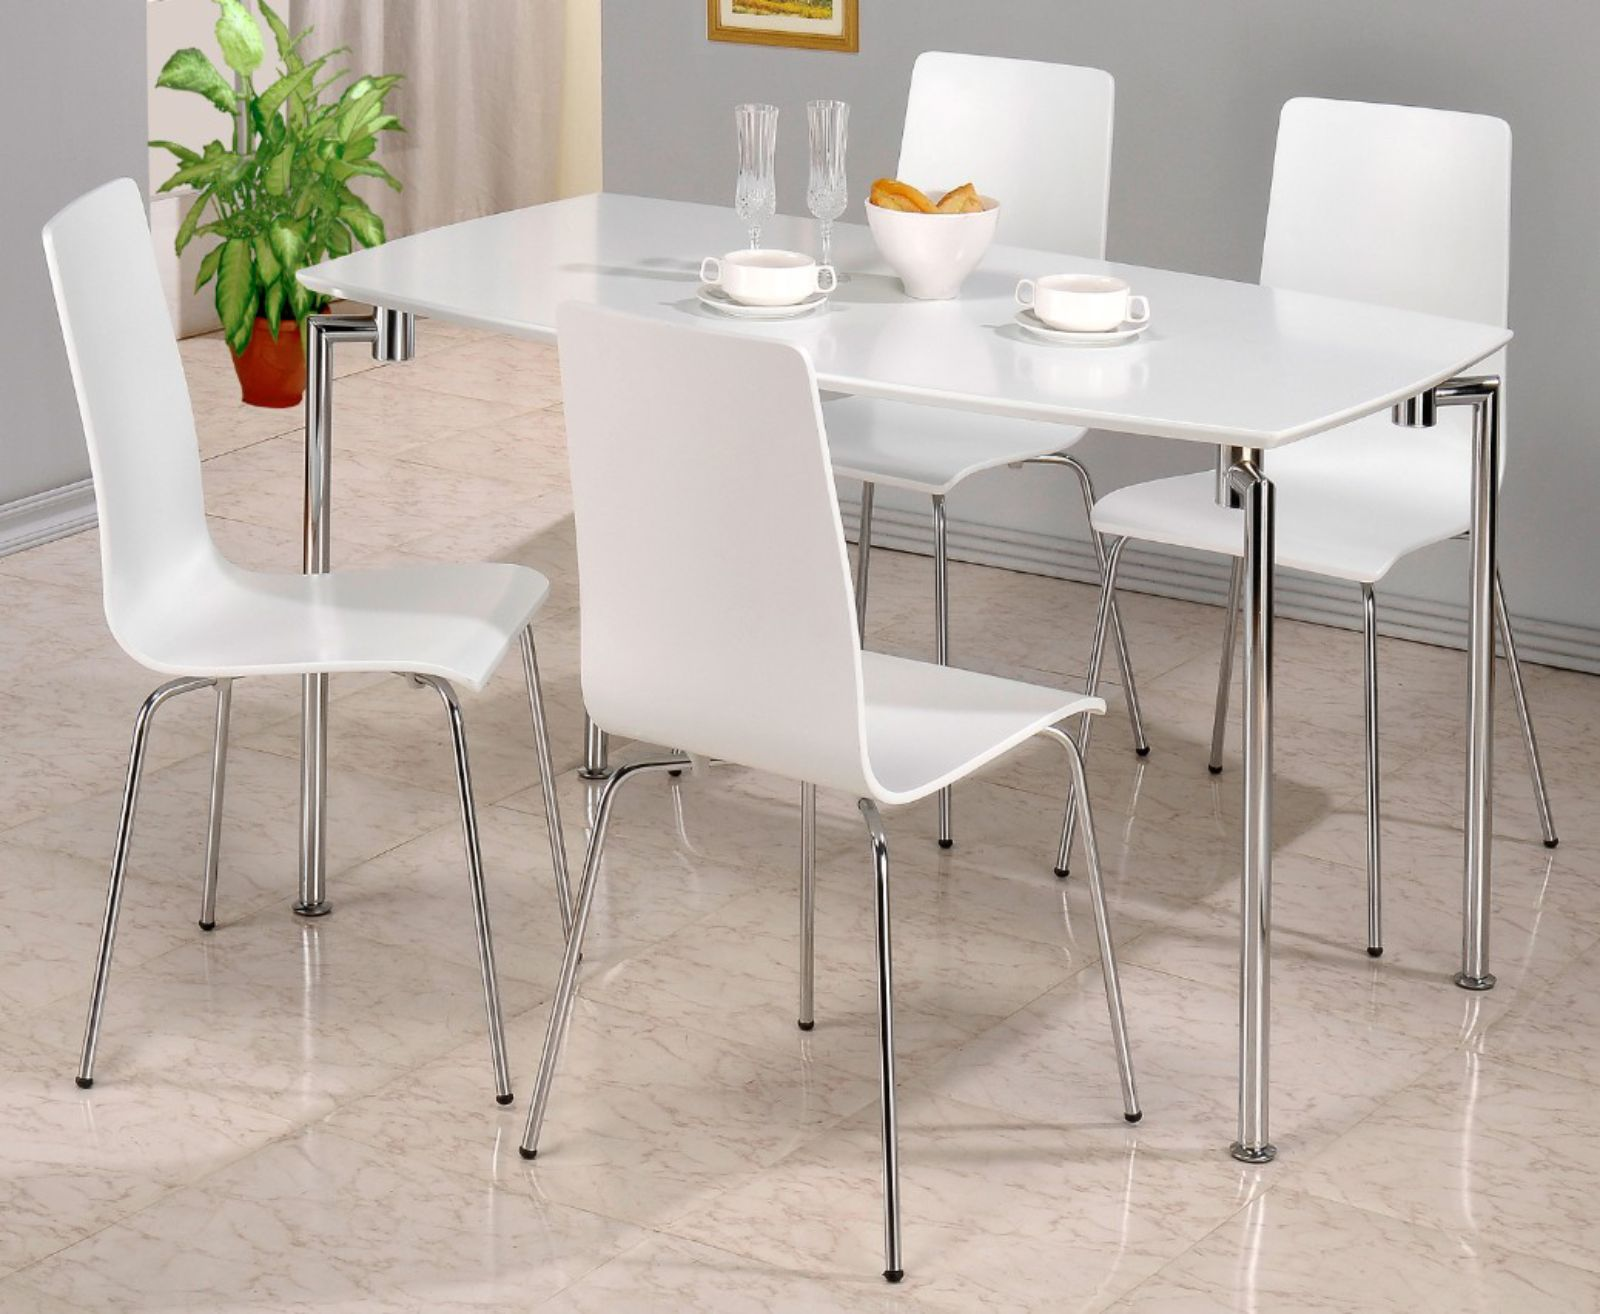 Fiji White High Gloss Rectangular Dining Table With 4 Chairs